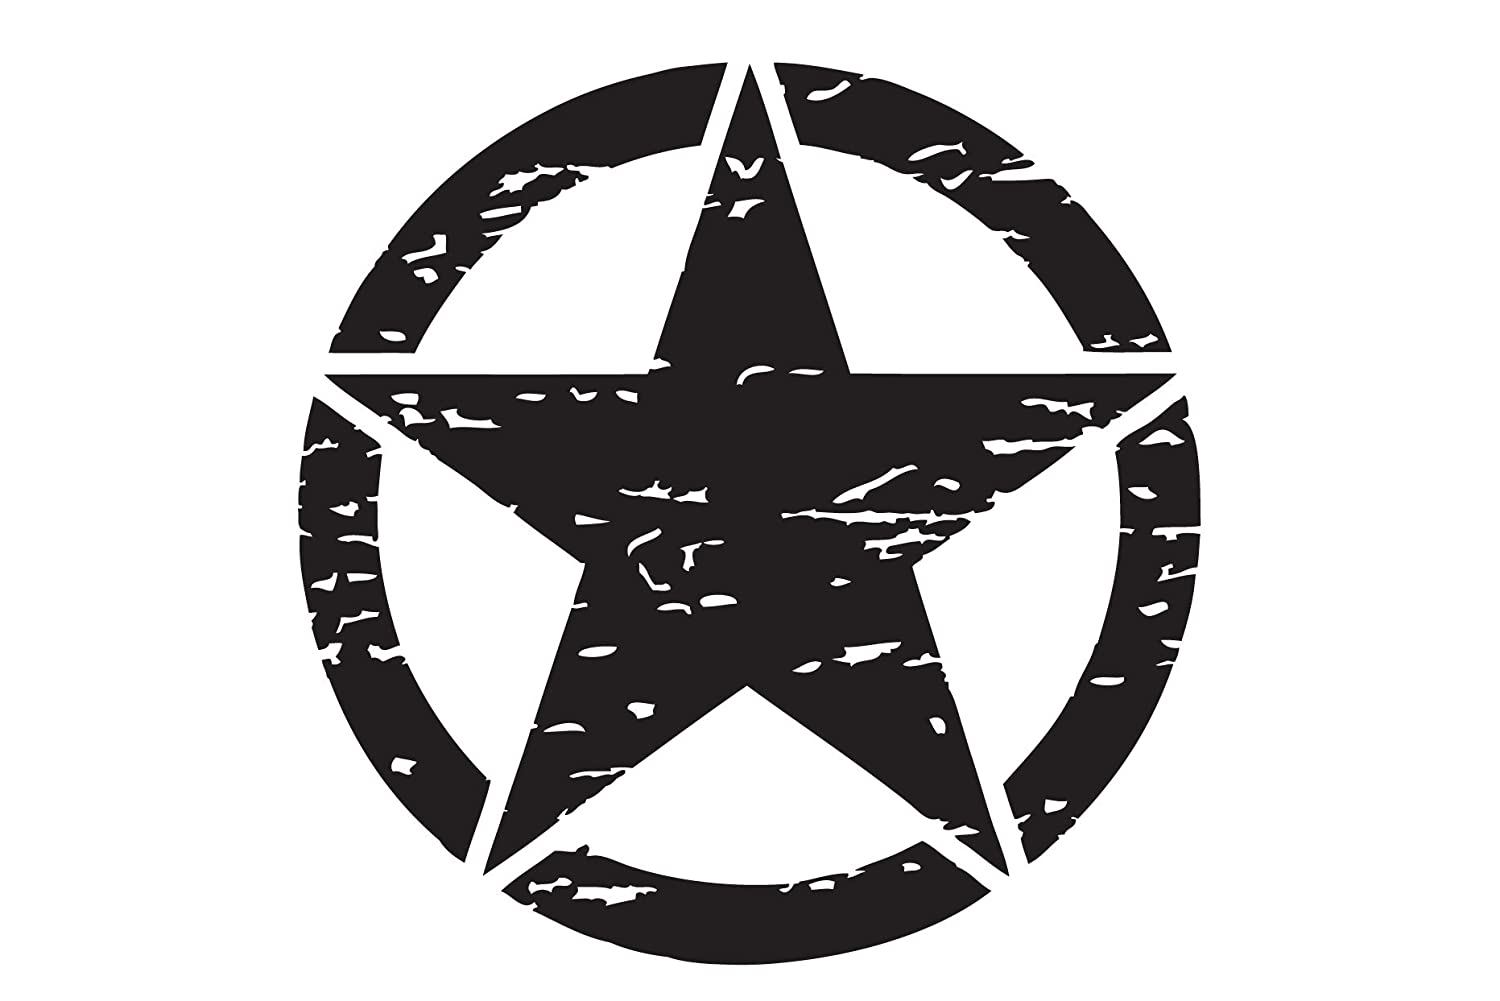 The Pixel Hut gs00155 20' Matt Black Distressed Army Military Star Hood Decal